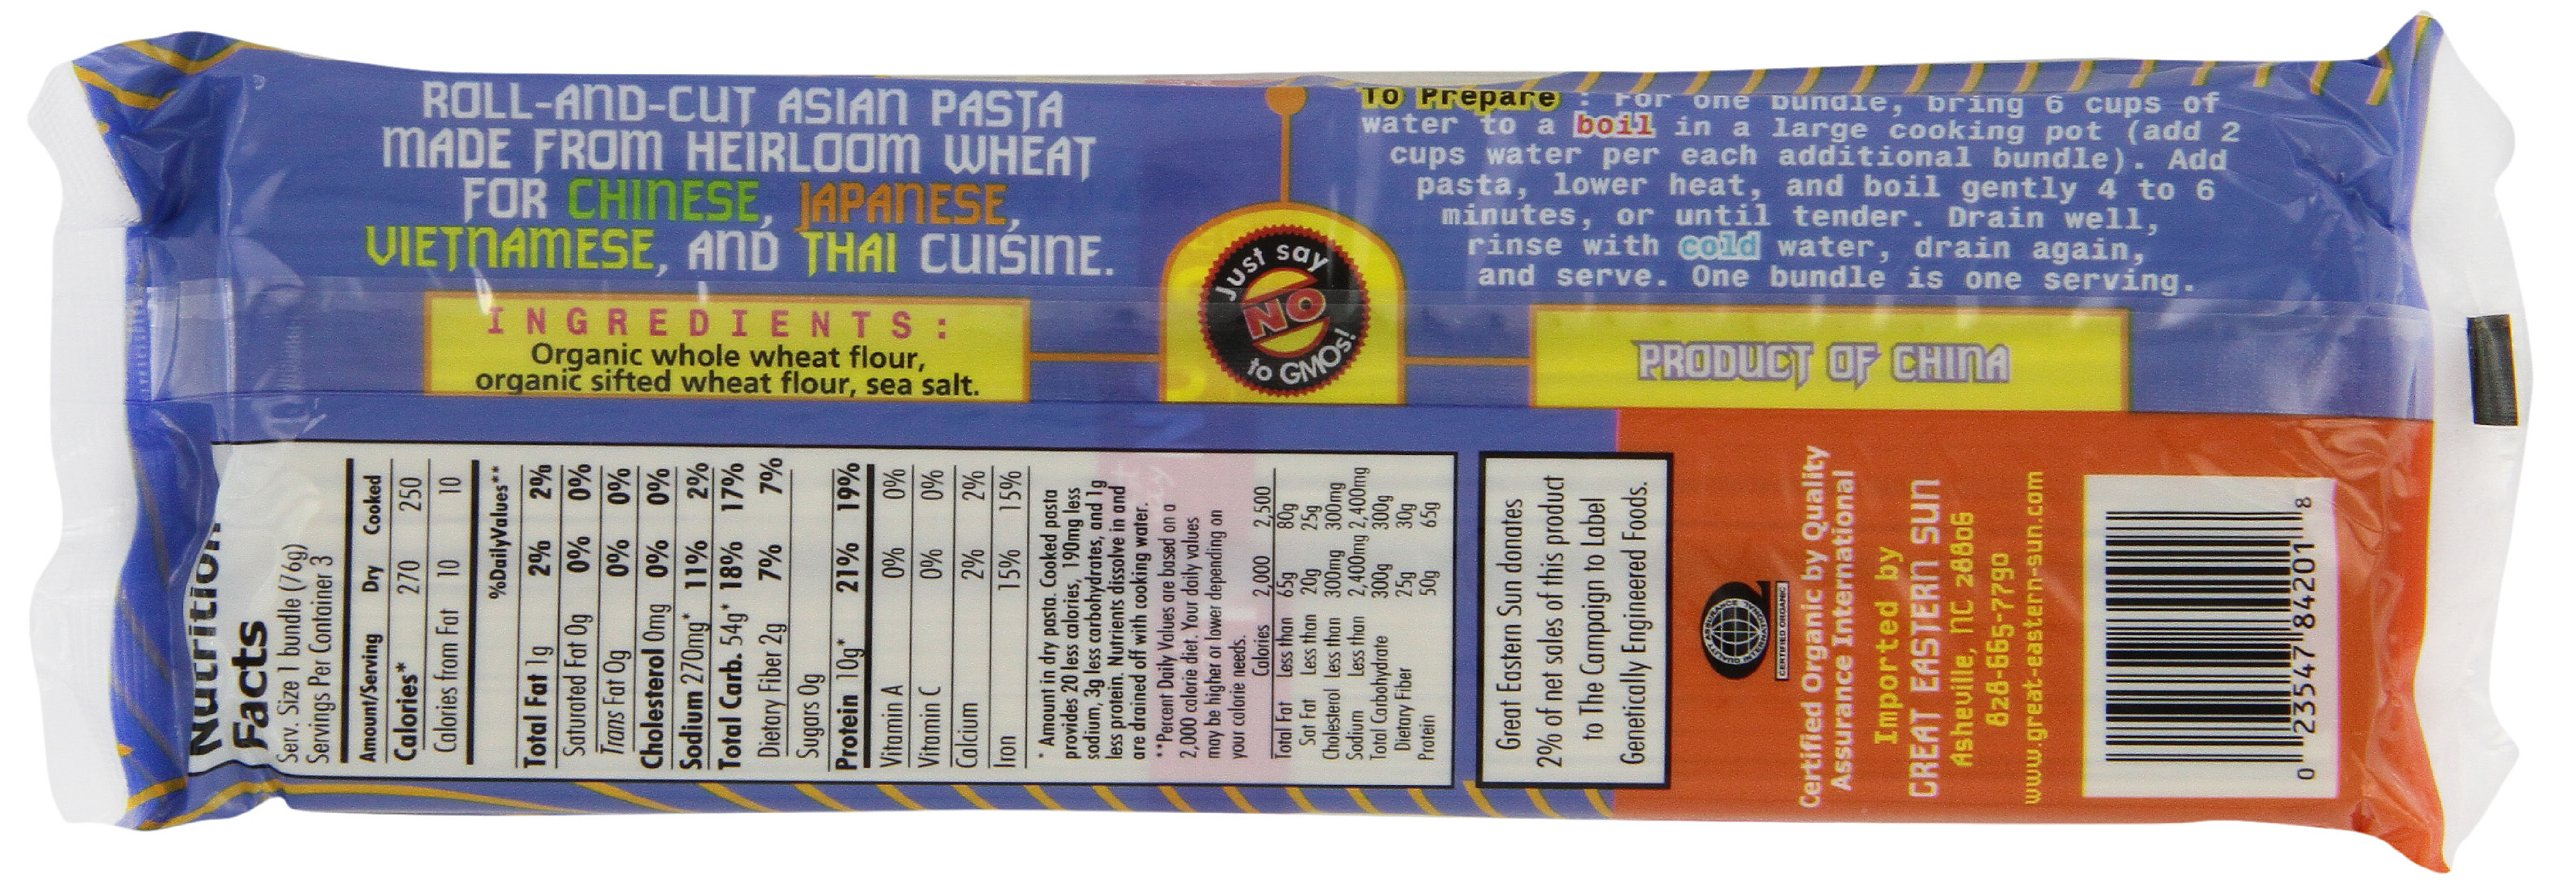 Organic Planet Organic Traditional Lomein Noodles, 8-Ounce (Pack of 12) by Organic Planet (Image #4)